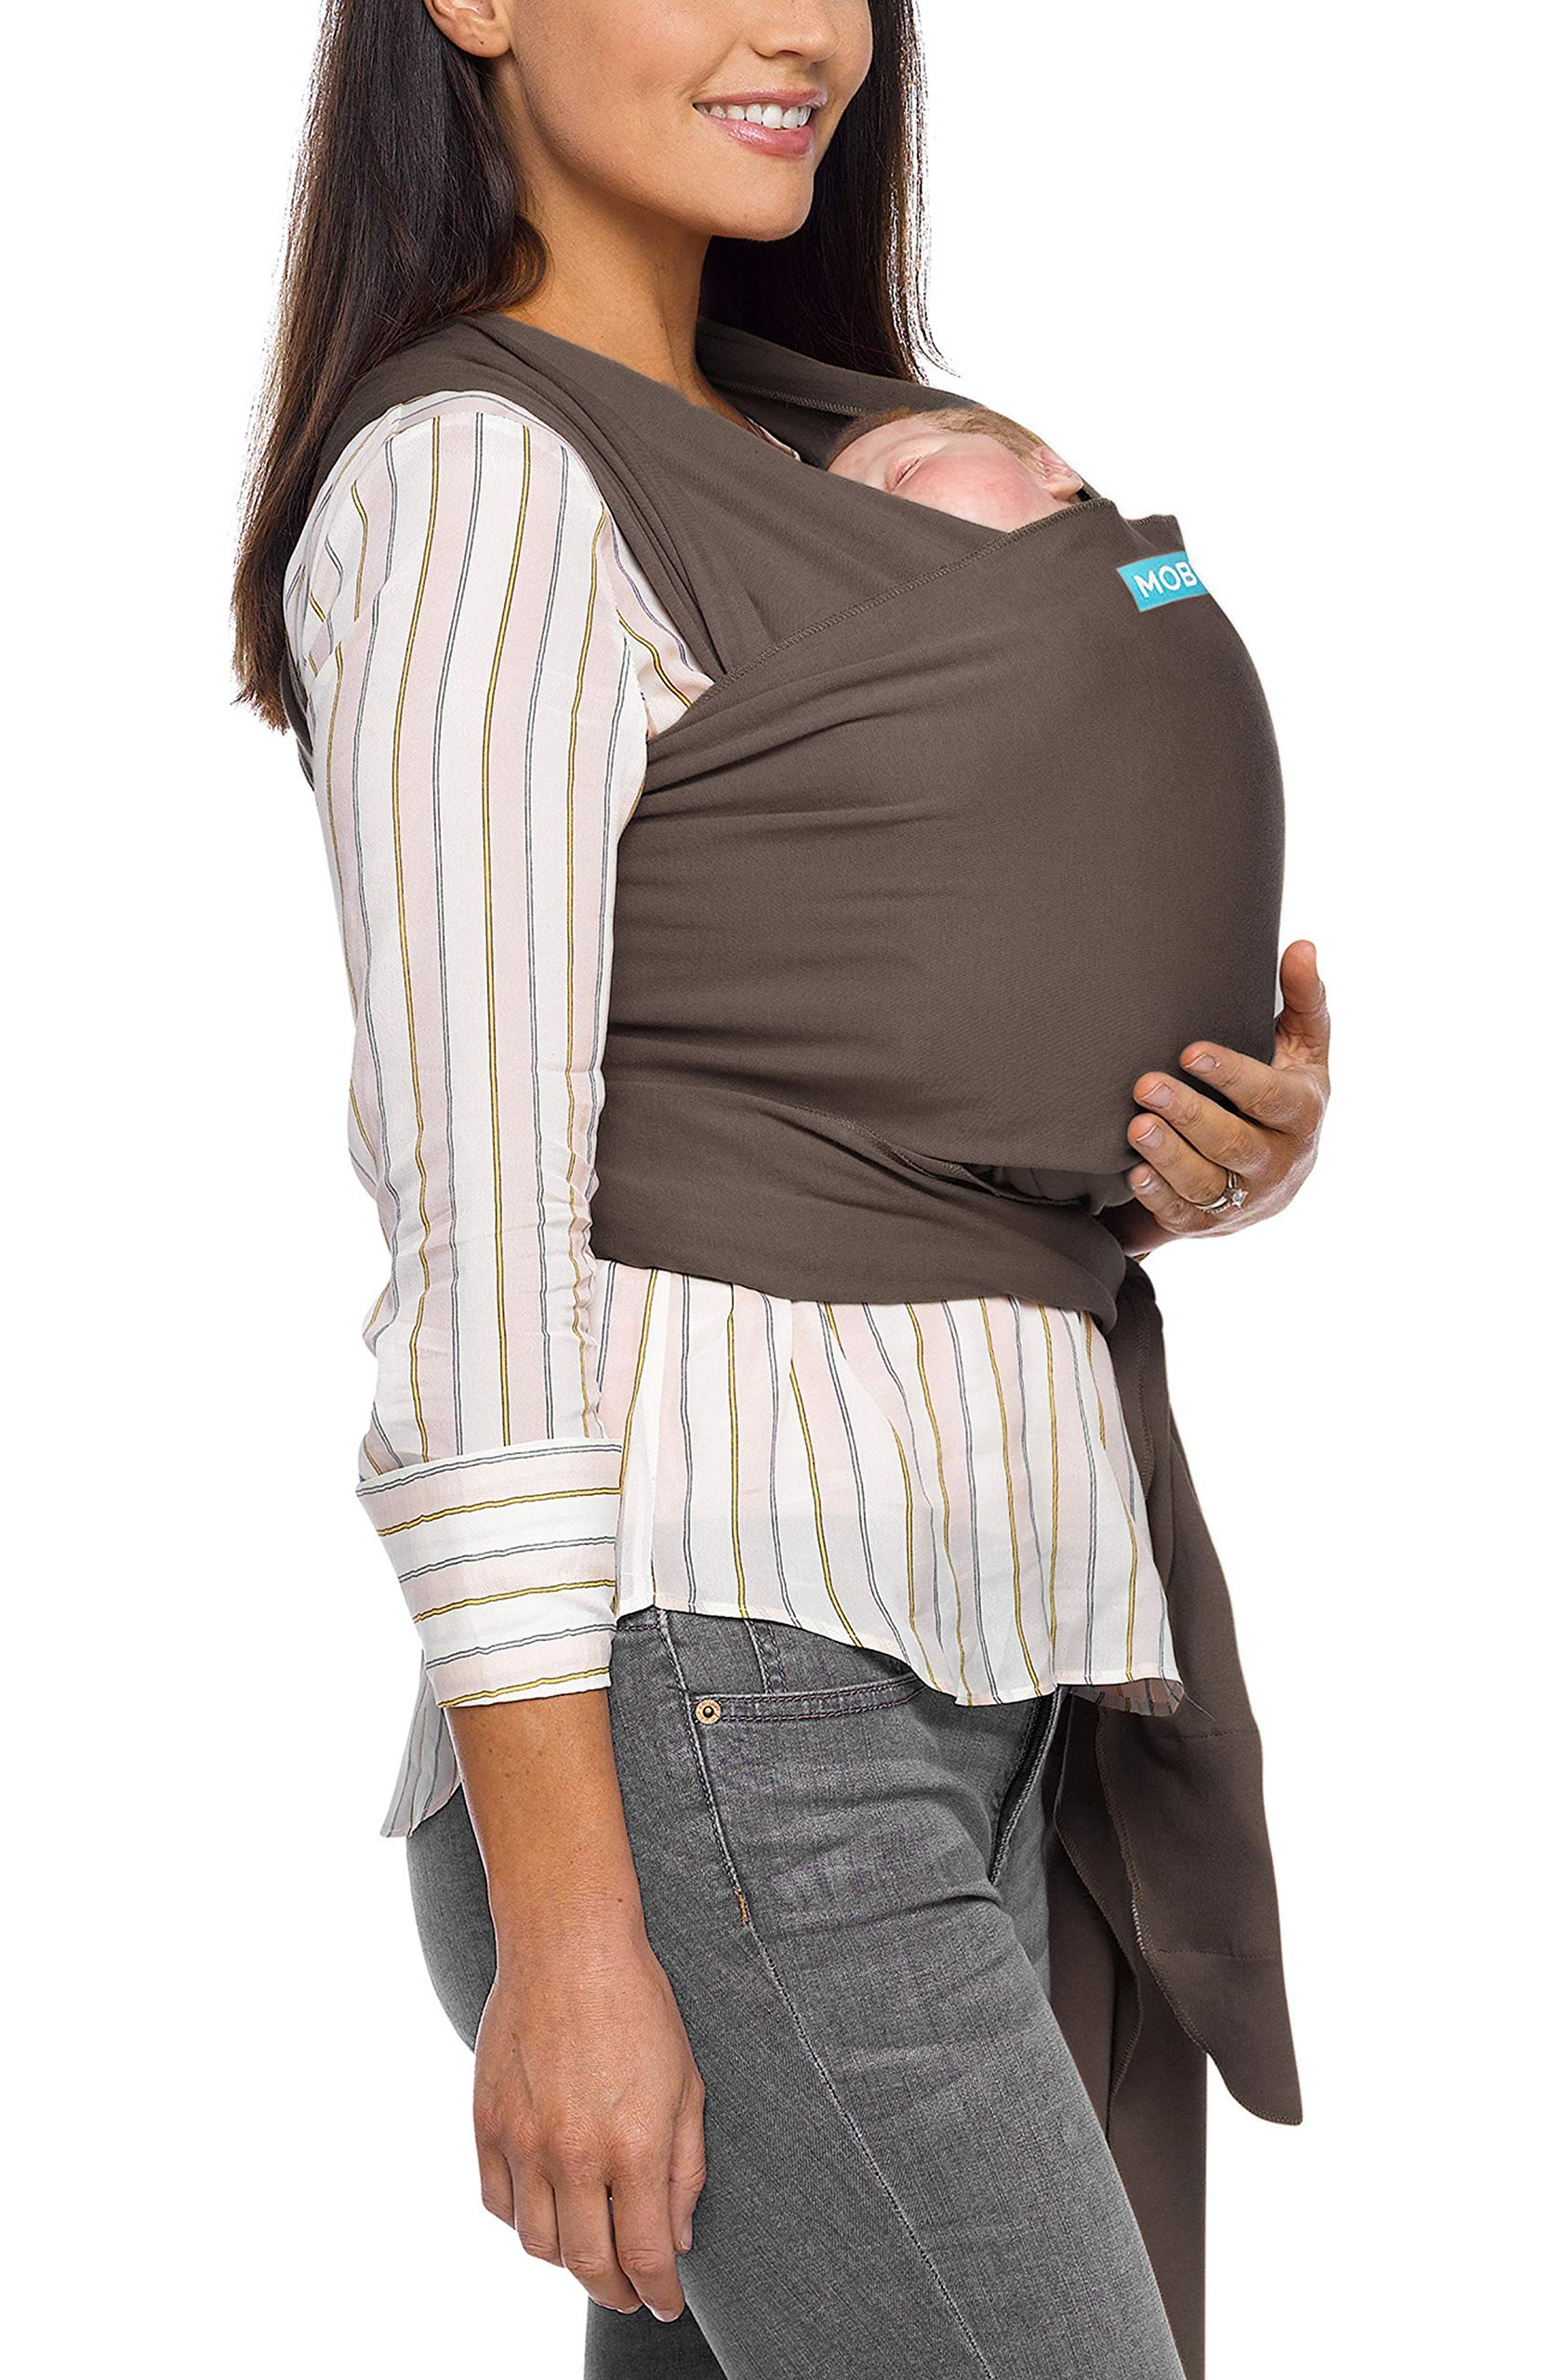 MOBY Classic Baby Wrap Carrier for Newborn to Toddler up to 33lbs, Baby Sling from Birth, One Size Fits All, Breathable Stretchy made from 100% Cotton, Unisex Moby One size fits all Encourages parent/child bonding Ideal for all climates and seasons 28